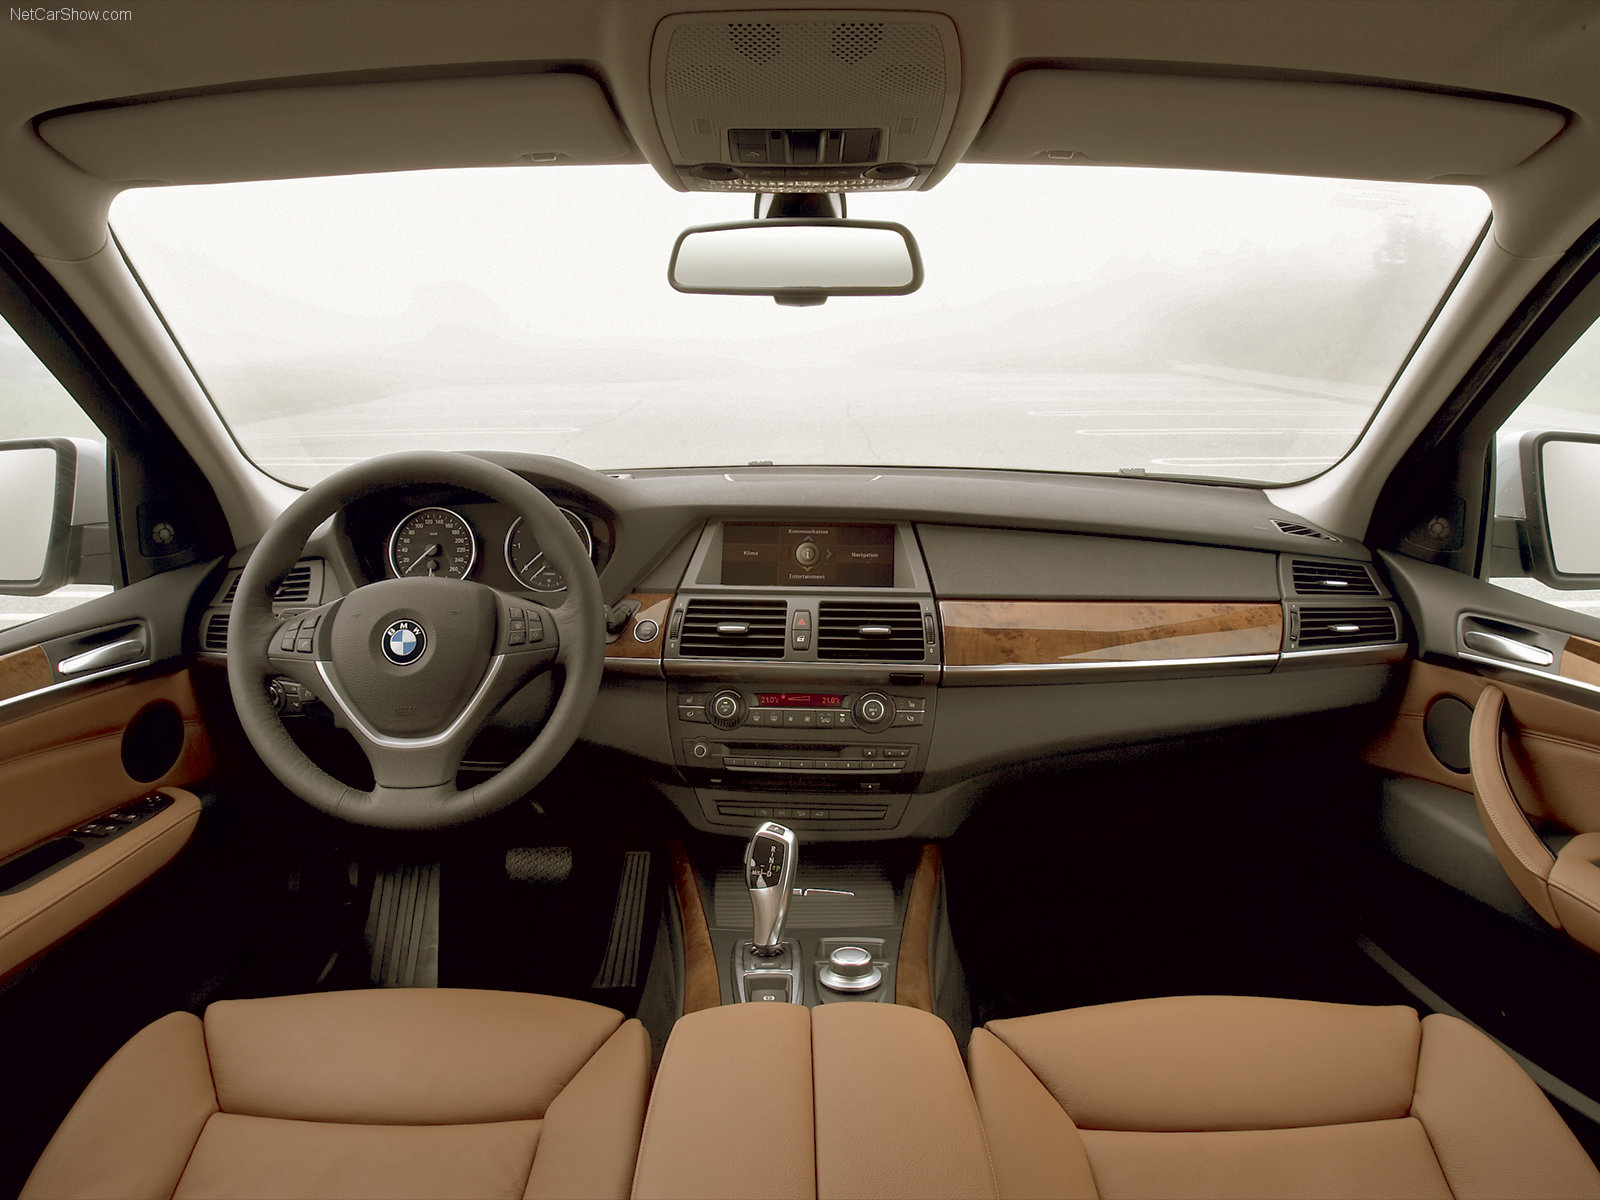 bmw i8 interior 2017 html with Bmw X5 E70 Model 9257 on Bmw M2 Cs Expected To Make Debut In Geneva Next Year also Nissan Cefiro likewise Bmw Twinpower Turbo Engines Explained 50443 together with 2015 Bmw I8 Coupe together with Bmw X2 Sportlicher Zwilling Des X1 203.